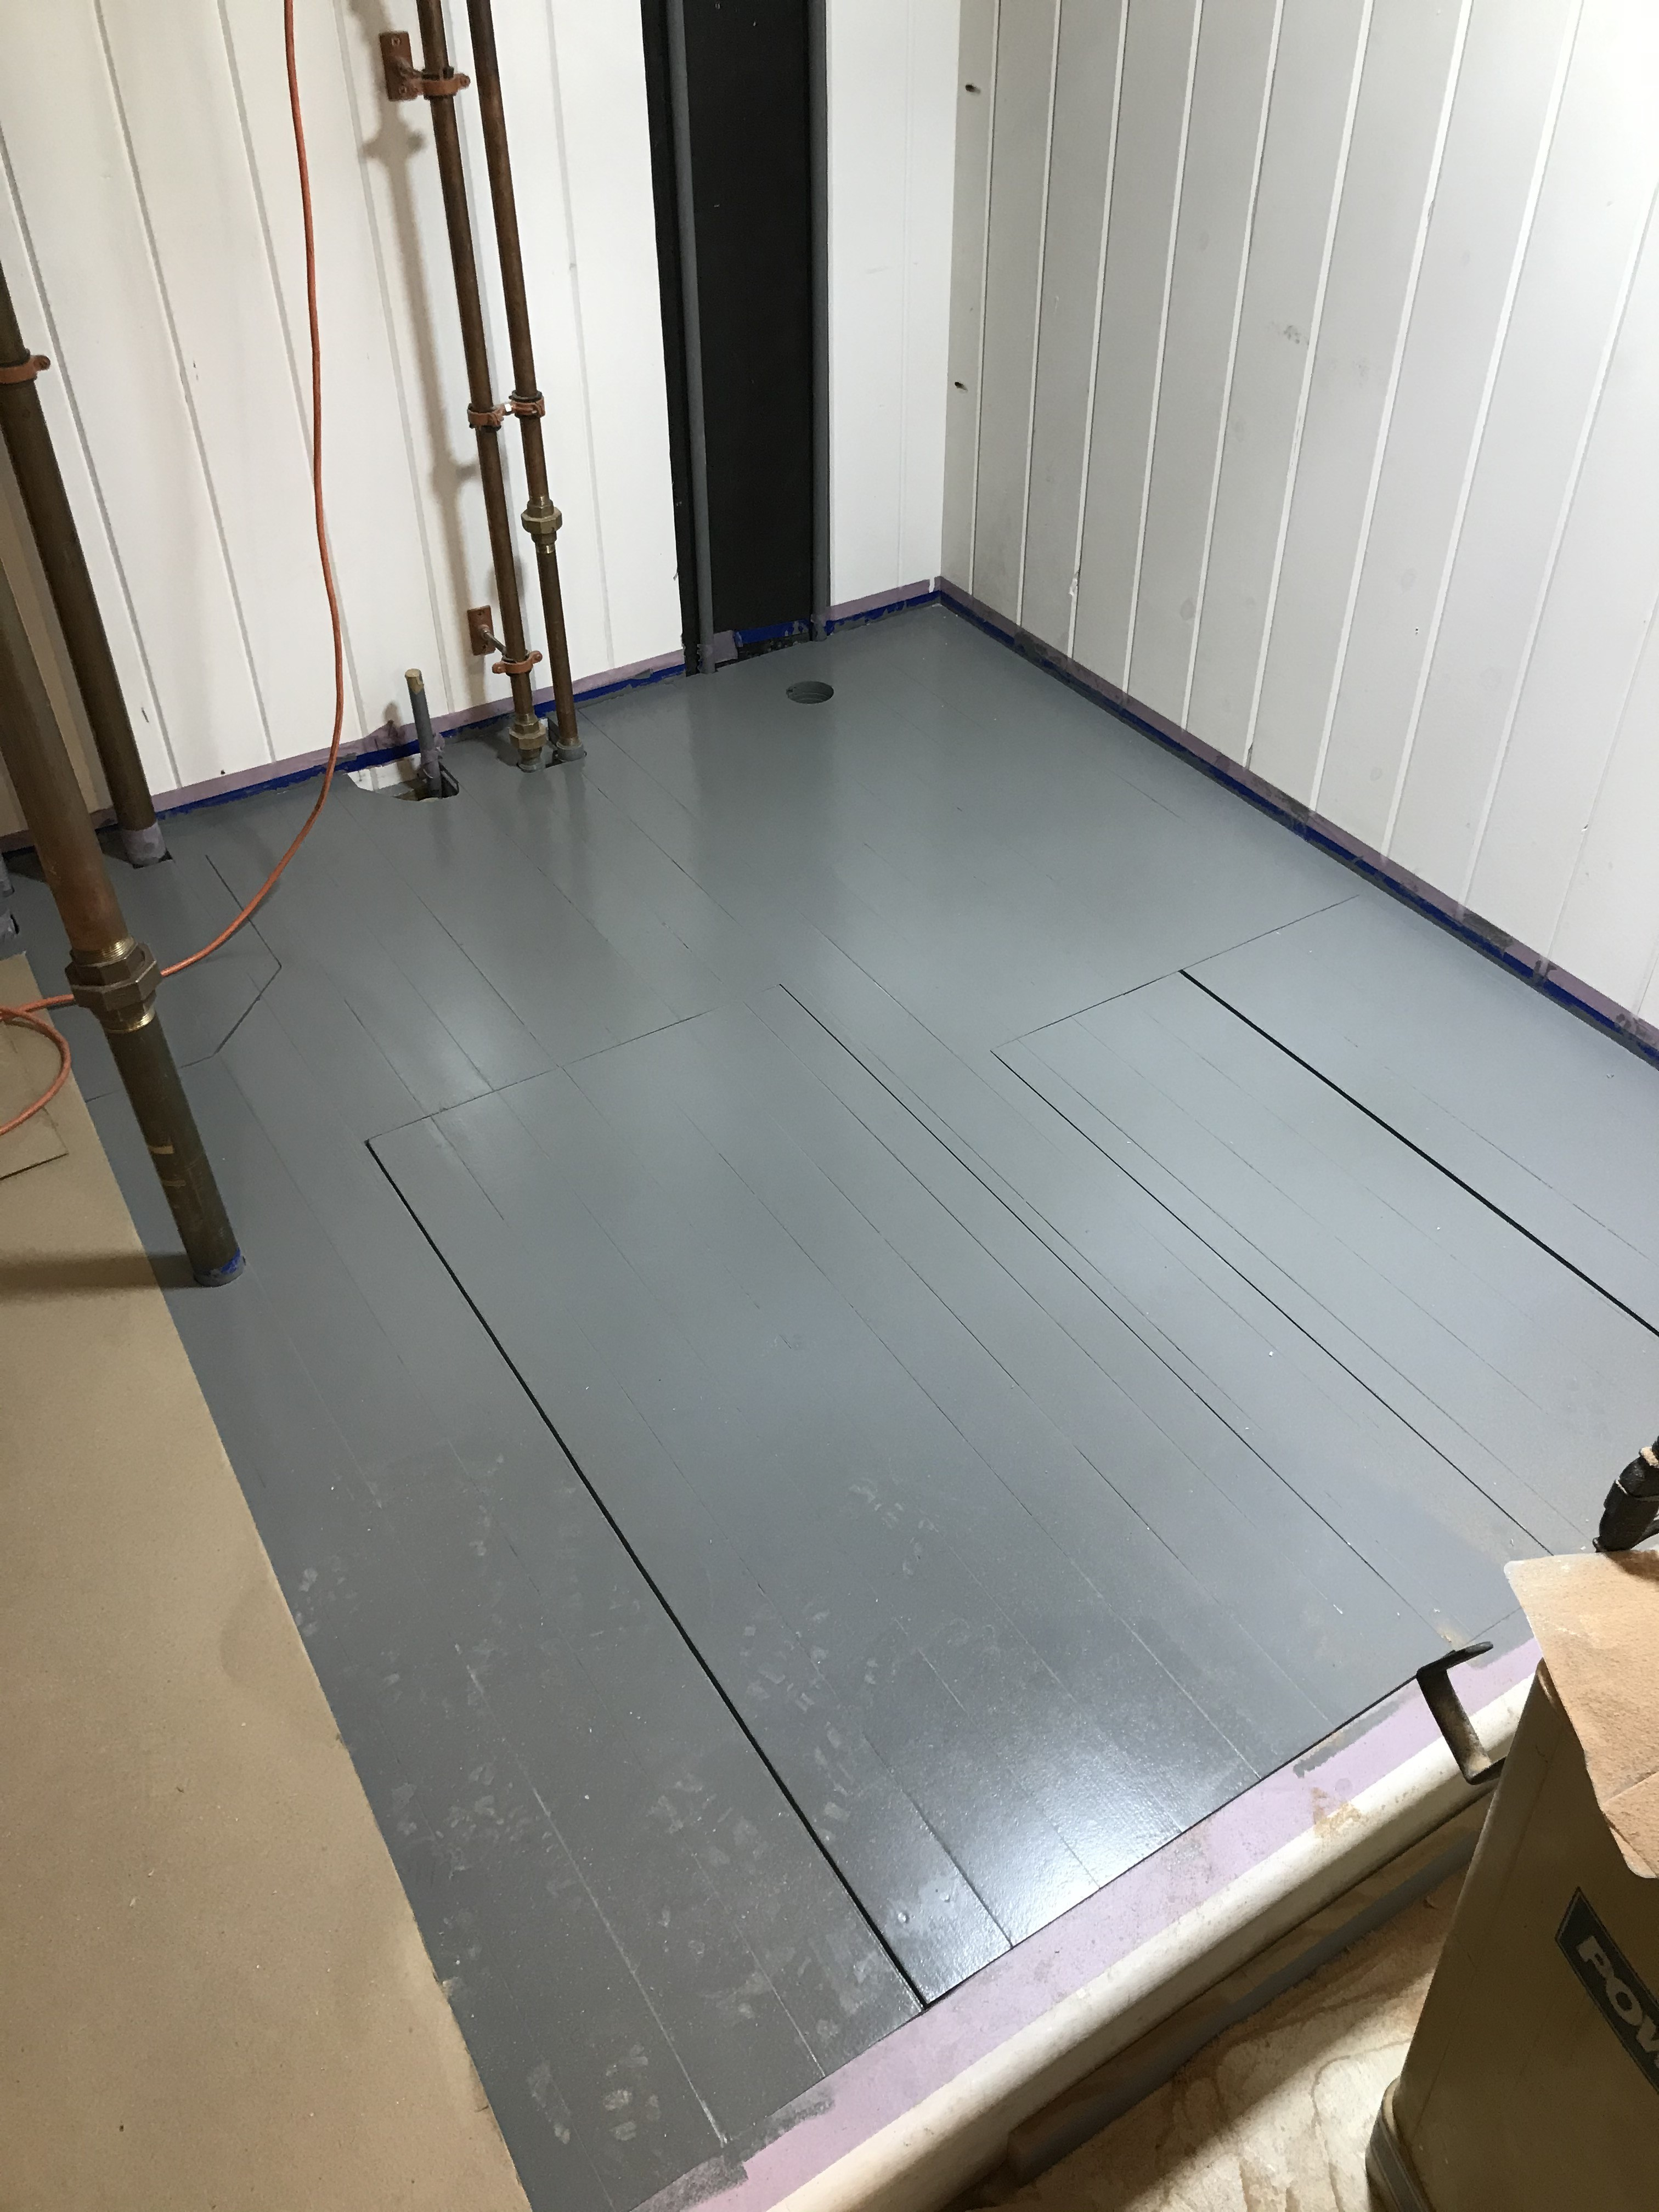 Throughout the ship we are seeing the signs of a livable interior space.  This image shows the completed floor in what will be the head compartment of the main cabin.  The finish is in primer, final coats will happen later once much of the traffic through this space has slowed.